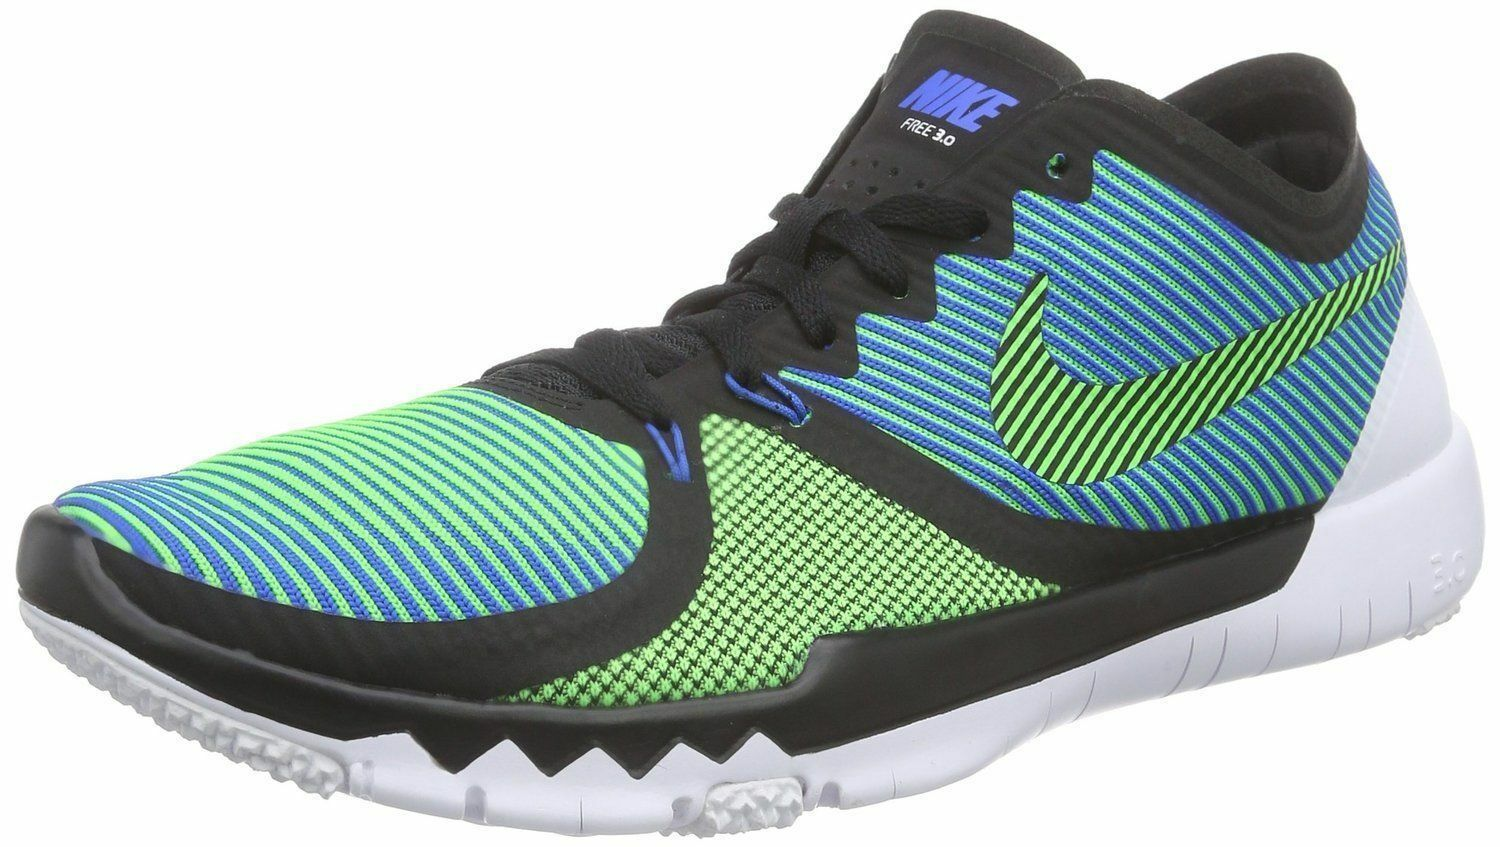 e859c6dc943 NIKE FREE TRAINER 3.0 V4 TRAINING SNEAKERS MEN SHOES 49361-034 SIZE 10 NEW